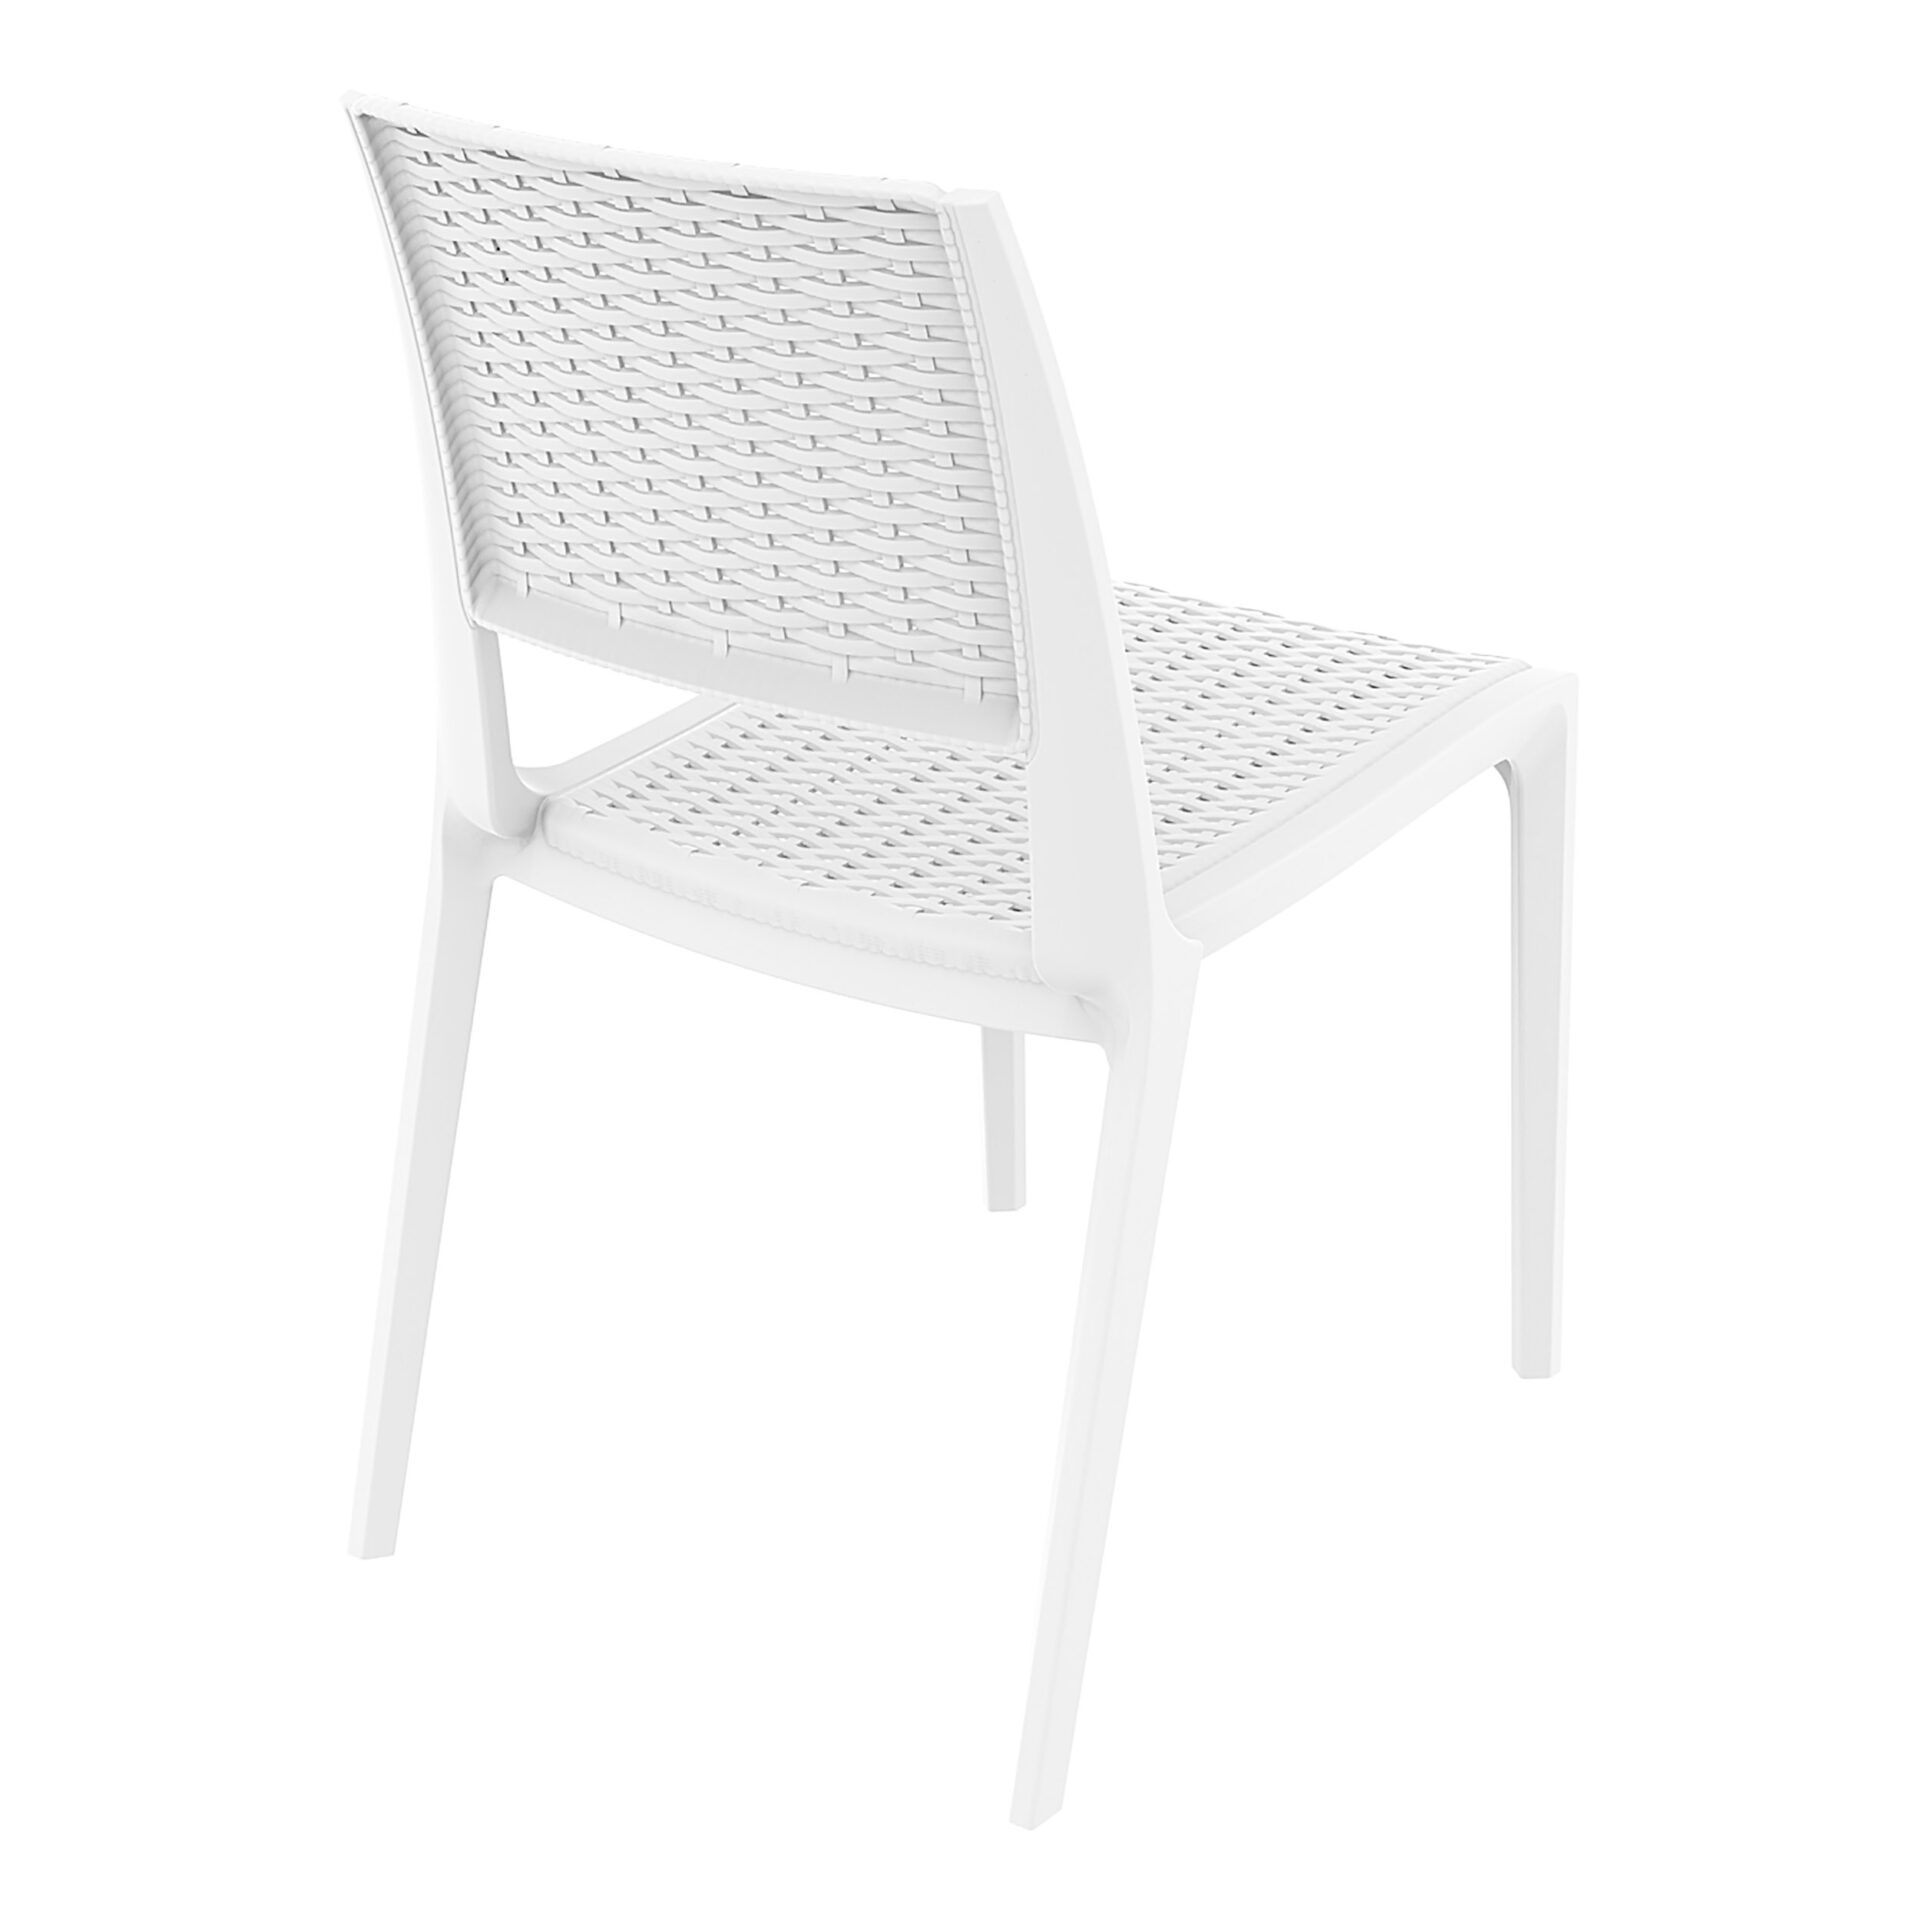 resin rattan outdoor cafe verona chair white back side